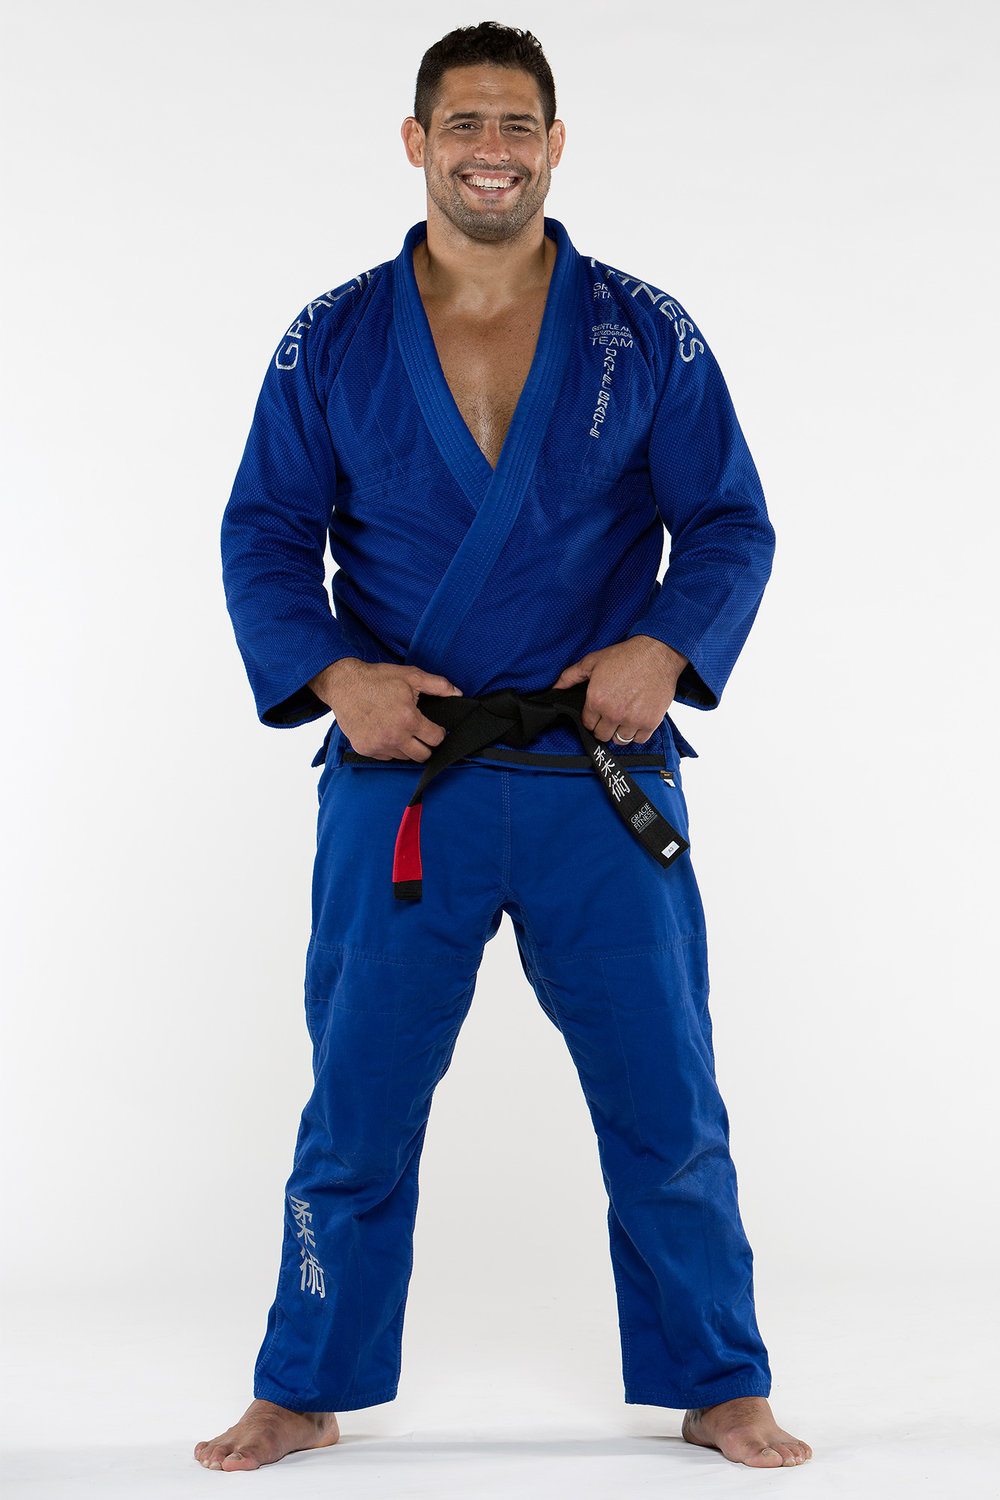 DANIEL GRACIE   Brazilian Jiu-Jitsu Black Belt and MMA athlete